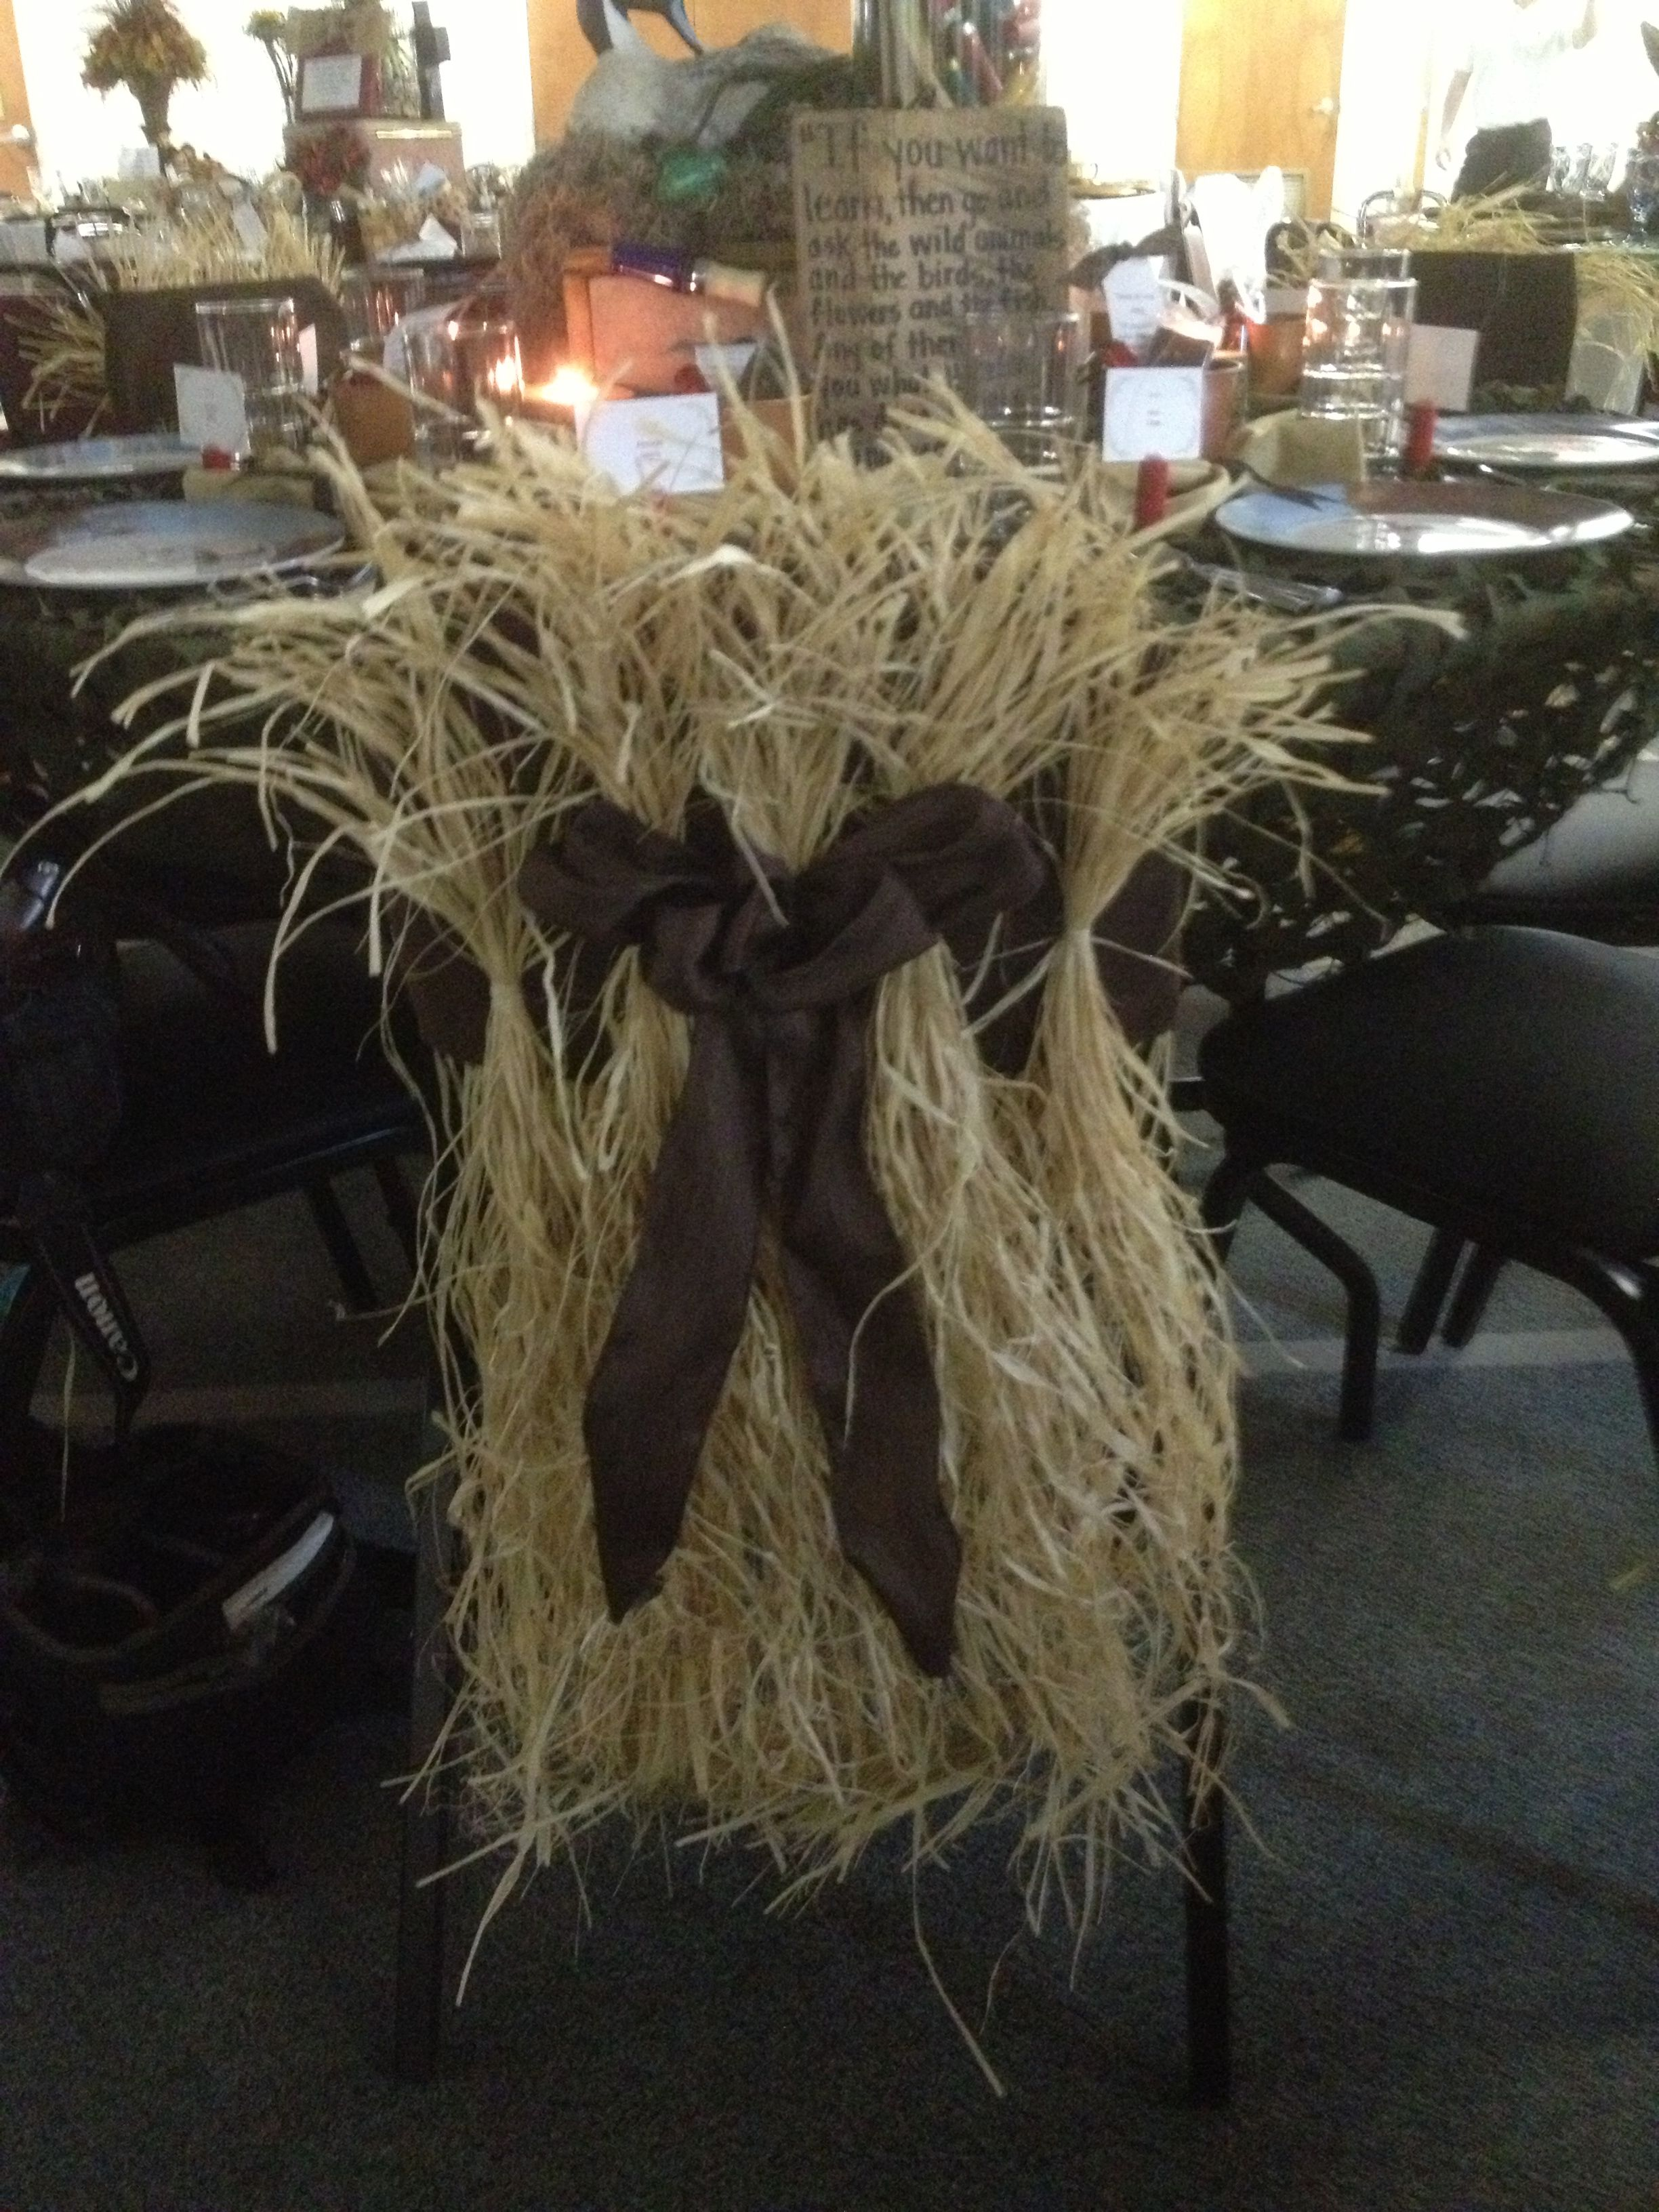 Duck Blind Chair Mid Century Upholstered Dining Chairs Themed Table Decorations Covers My Favorite Part Of